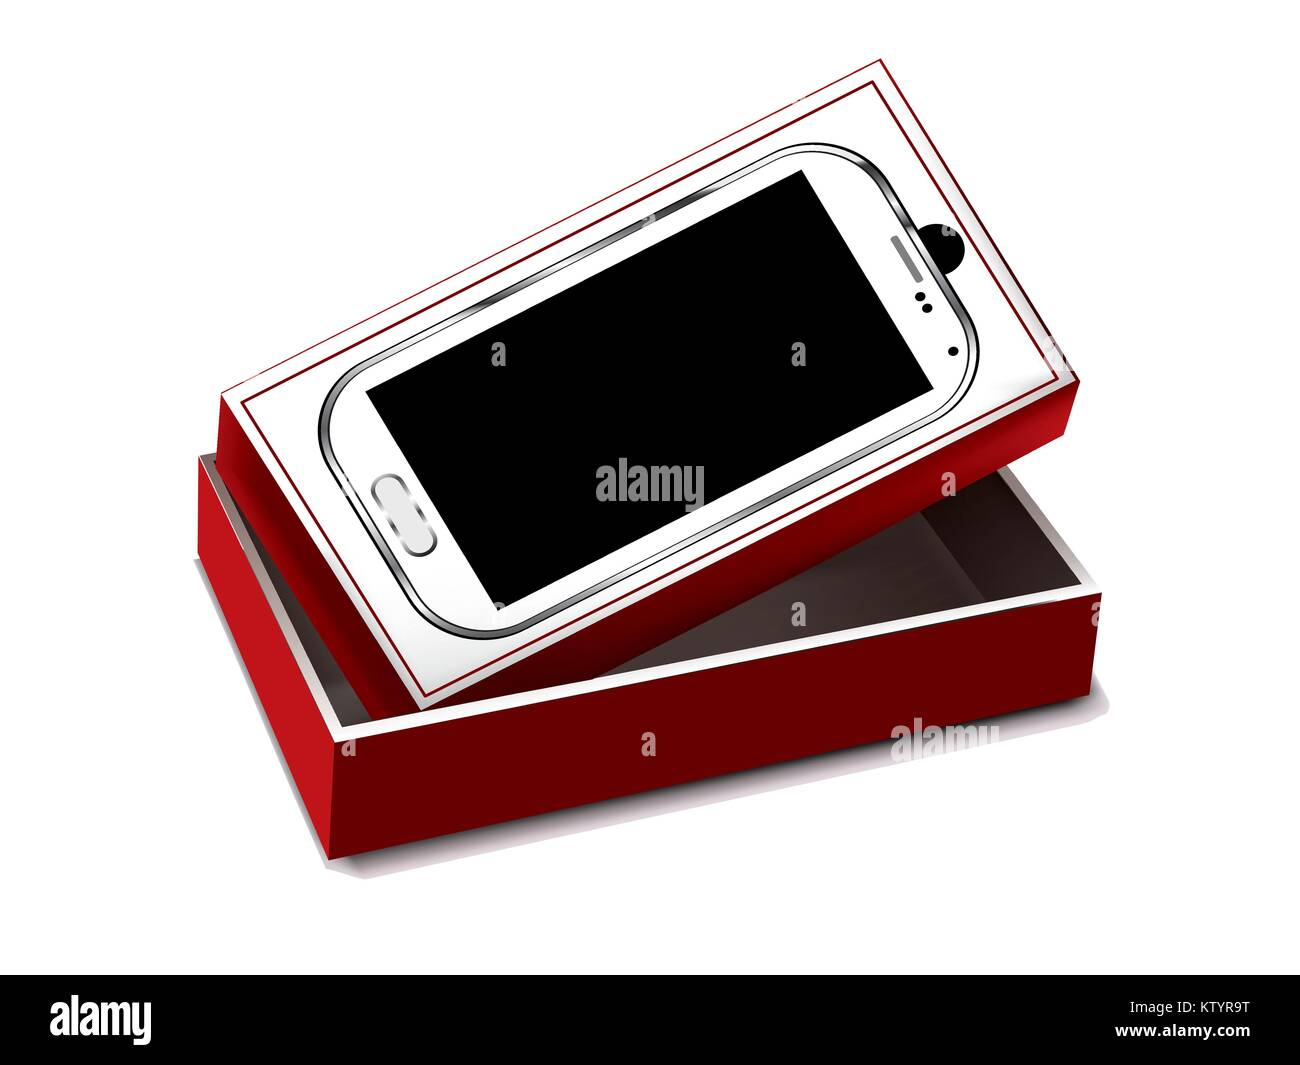 White mobile with red packaging on white background - Stock Image